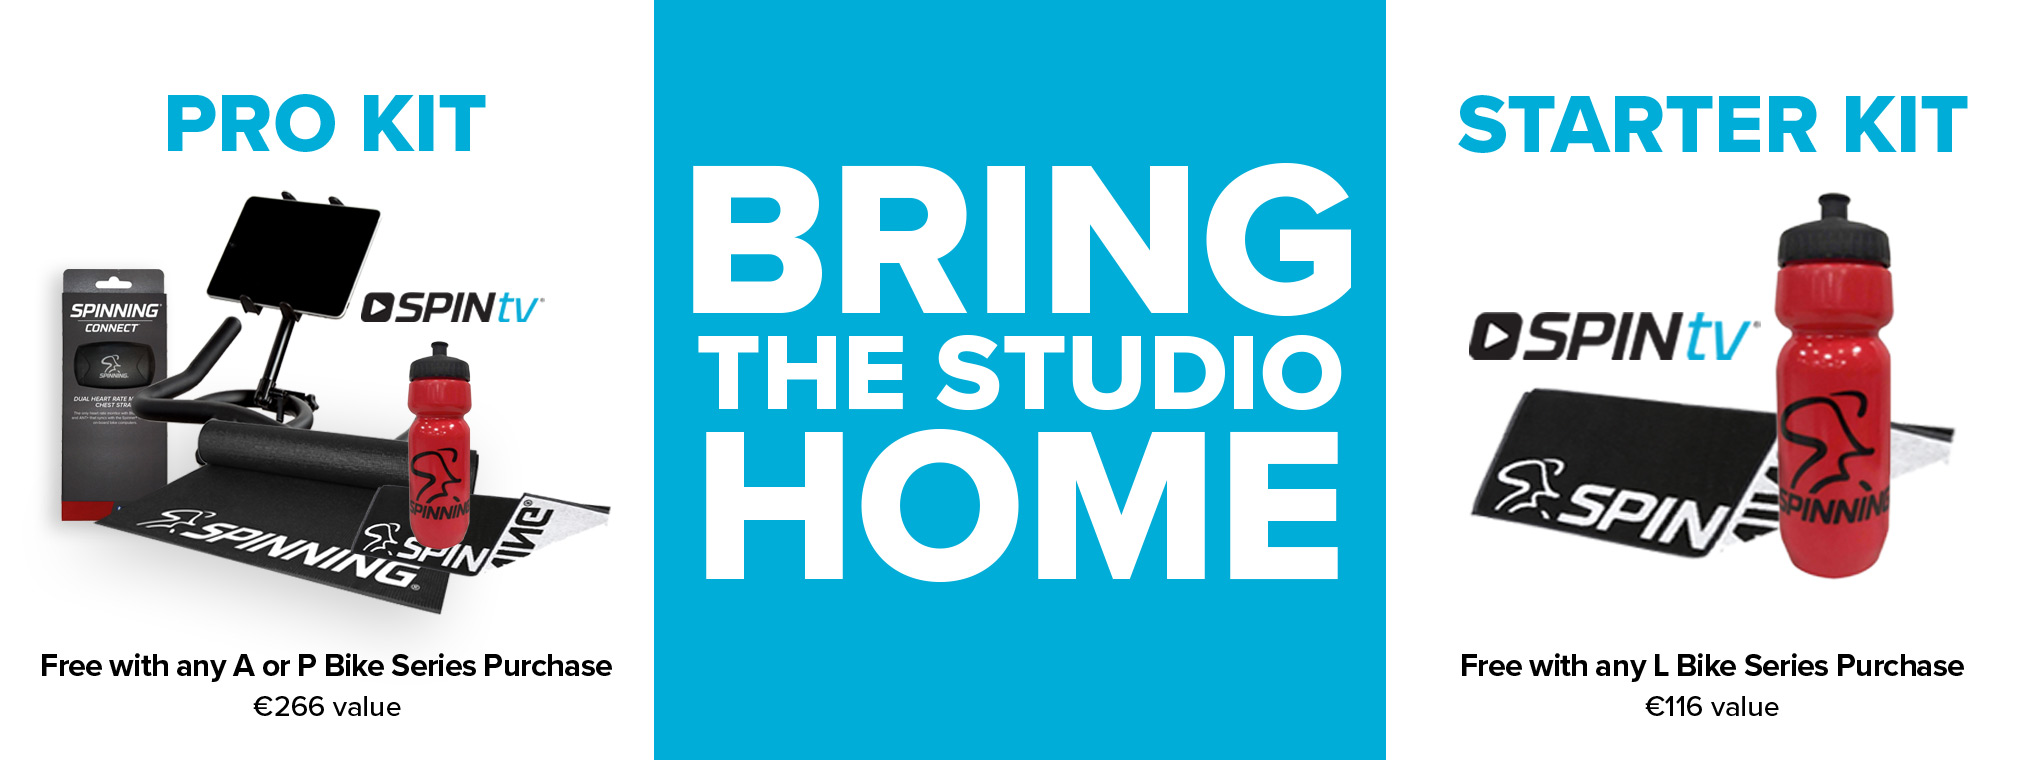 Bring the Studio Home